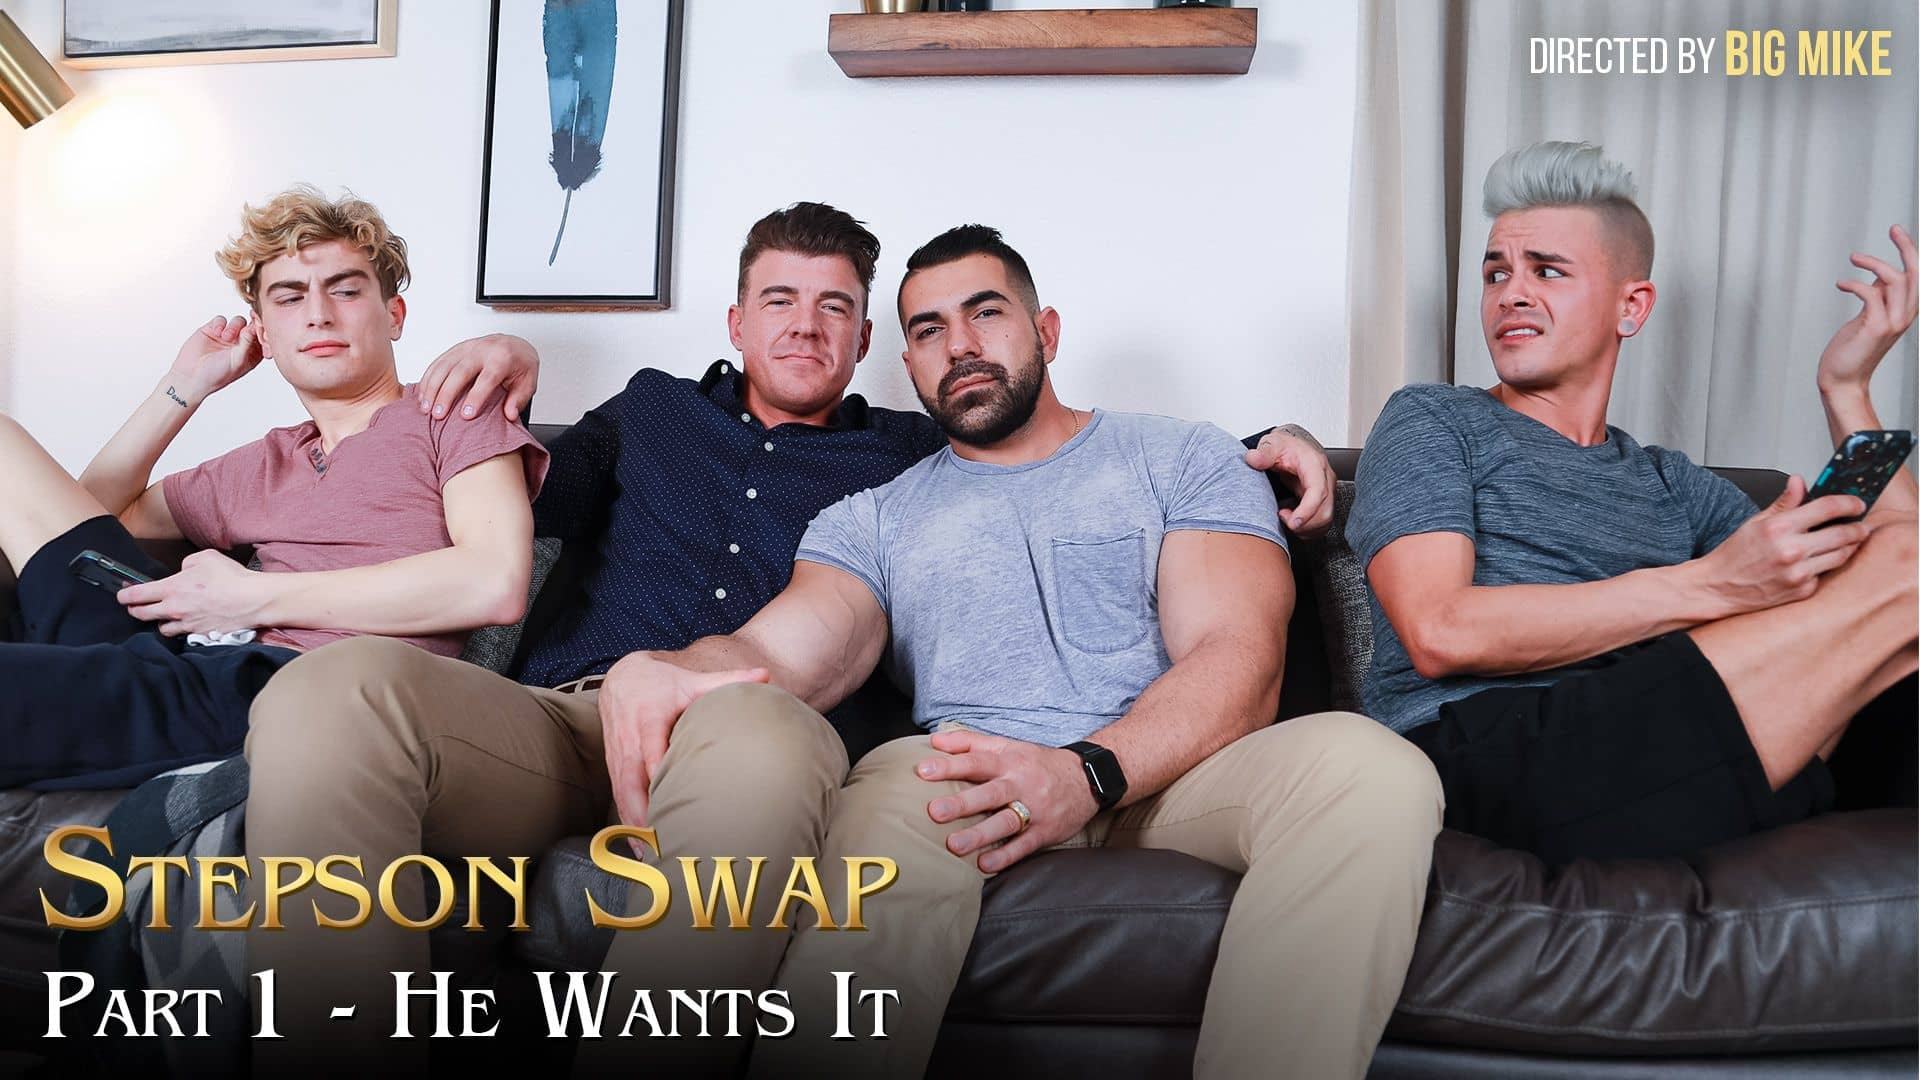 Stepson Swap Part 1, He Wants It – Andy Taylor and Damien Stone